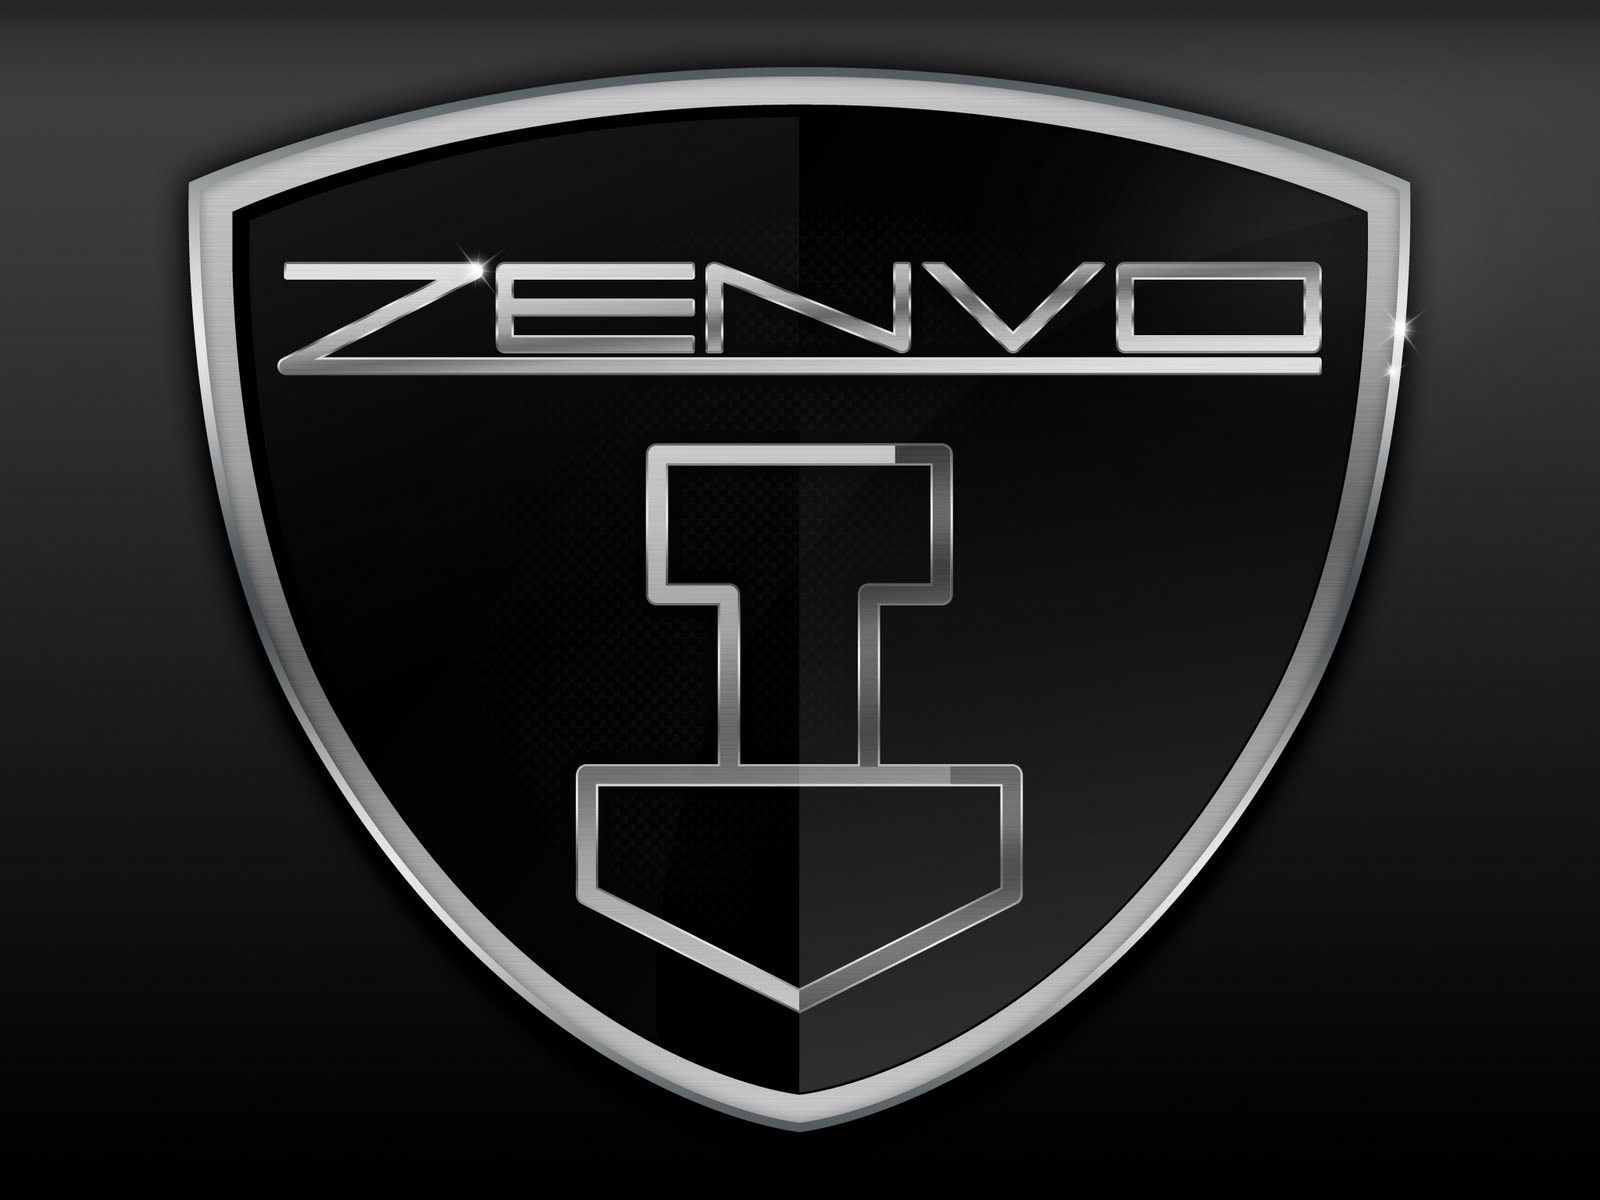 1600x1200 Px Free Download Pictures Of Zenvo St1 By Hall Turner For Pocketfullofgrace Com Car Logos Logos Zenvo St1